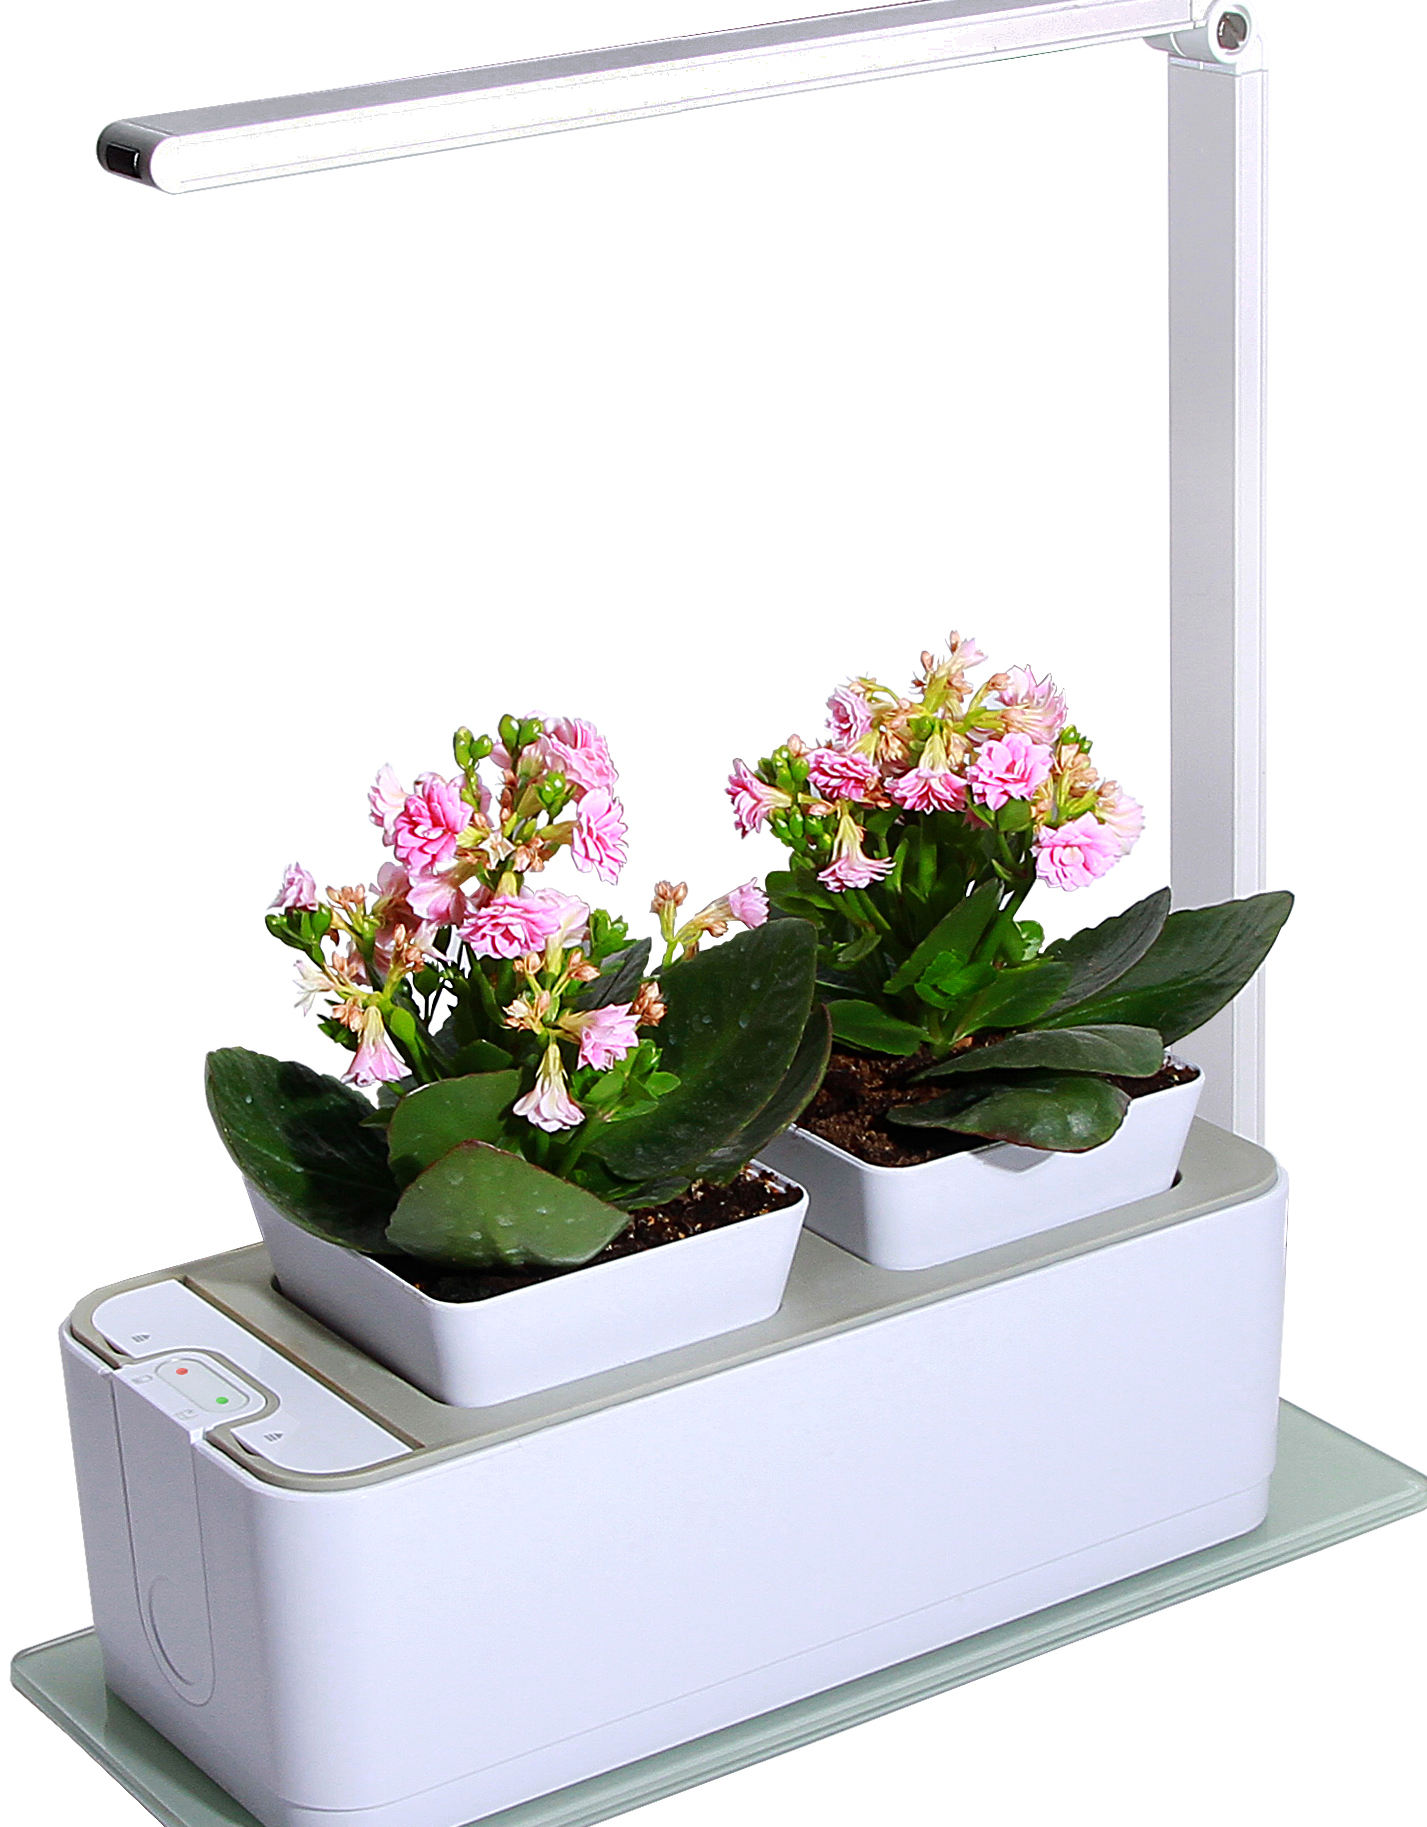 Hot organic hydroponic growing systems mini garden chepaer than click and grow indoor smart home garden with LED growing light